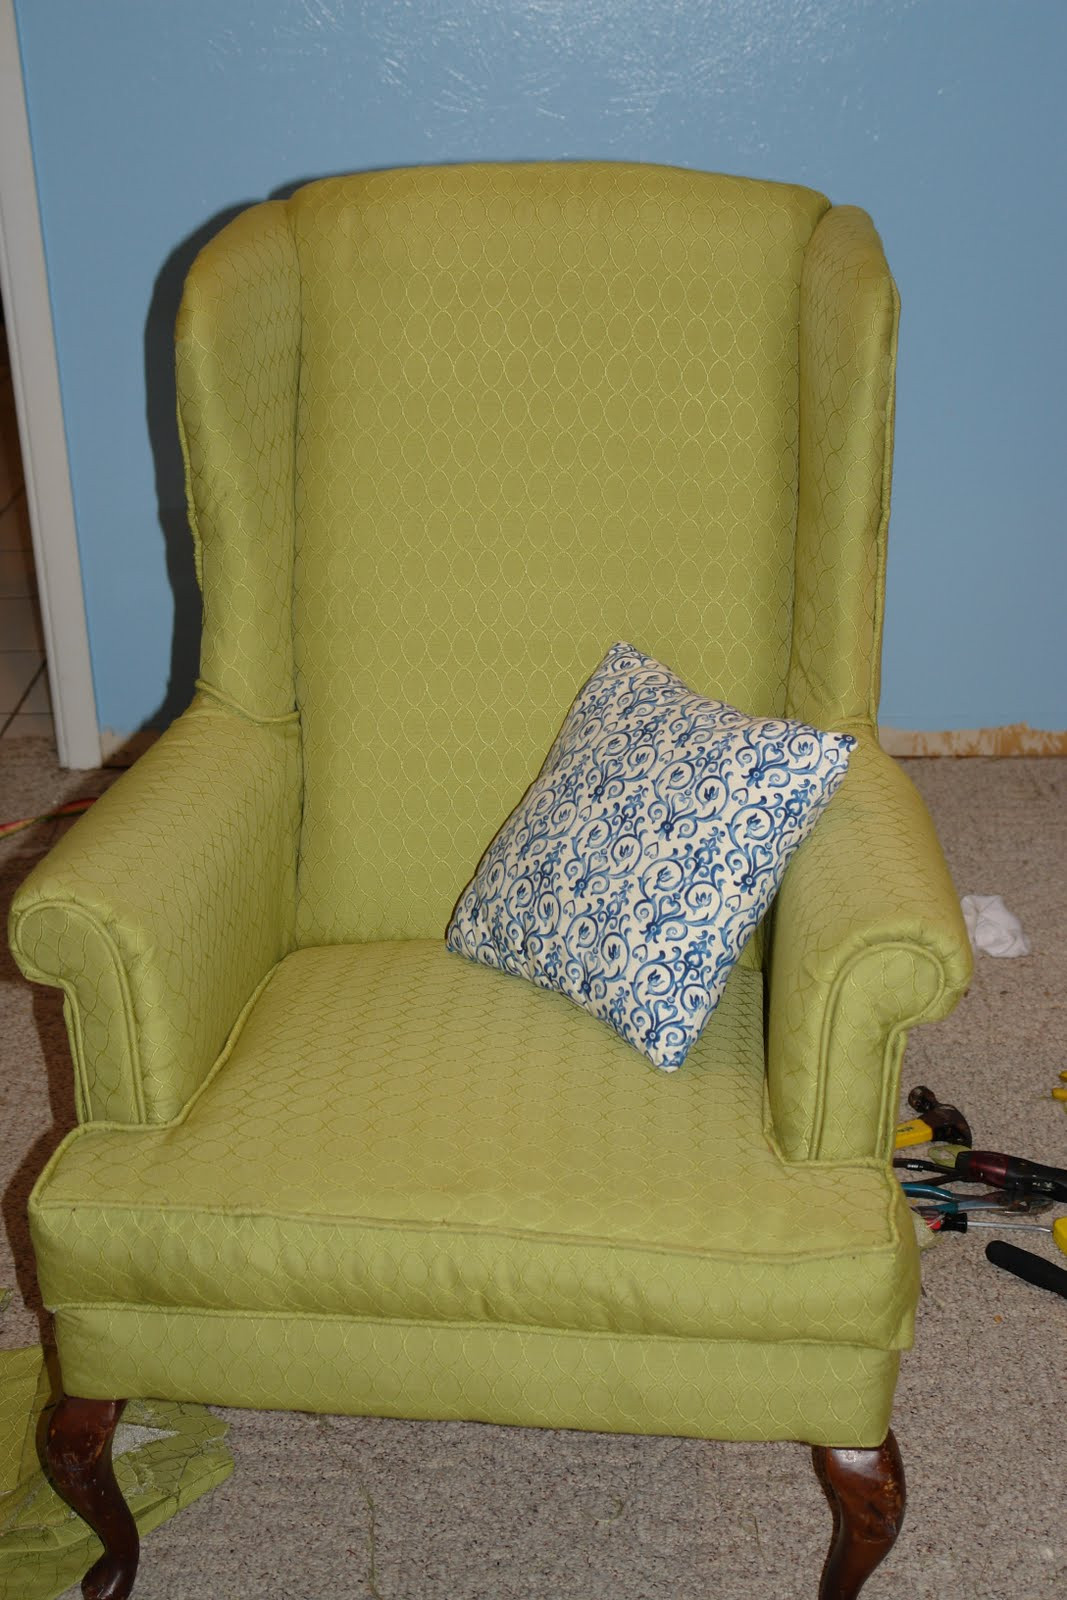 Best ideas about DIY Chair Cushion . Save or Pin NachoMatic Designs DIY Seat Cushion Now.